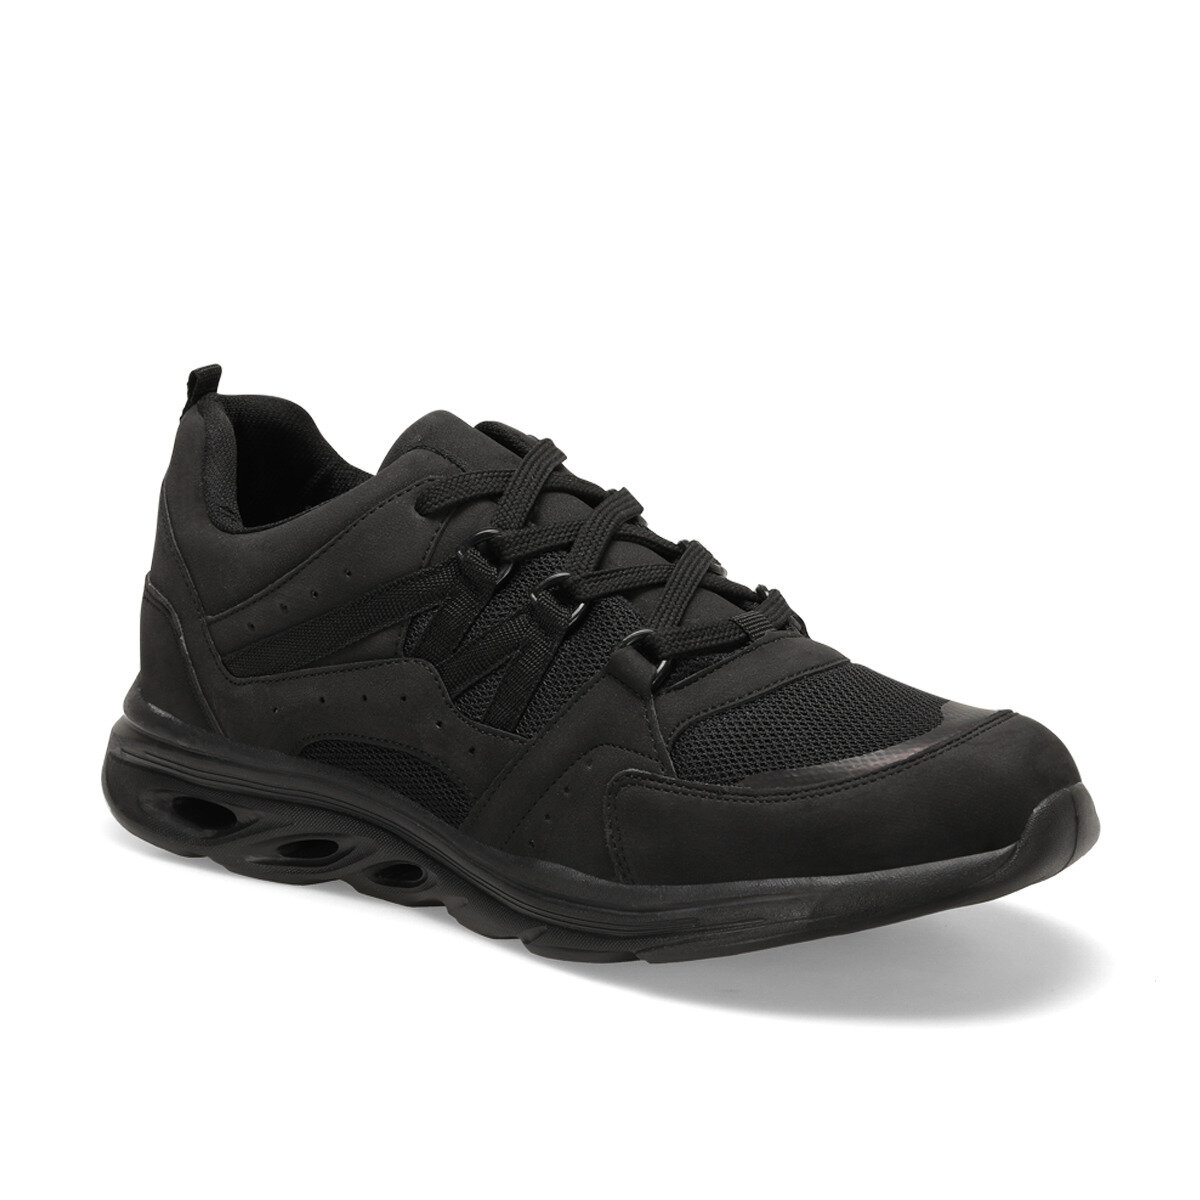 FLO CTN14 Black Male Sports Shoes Forester